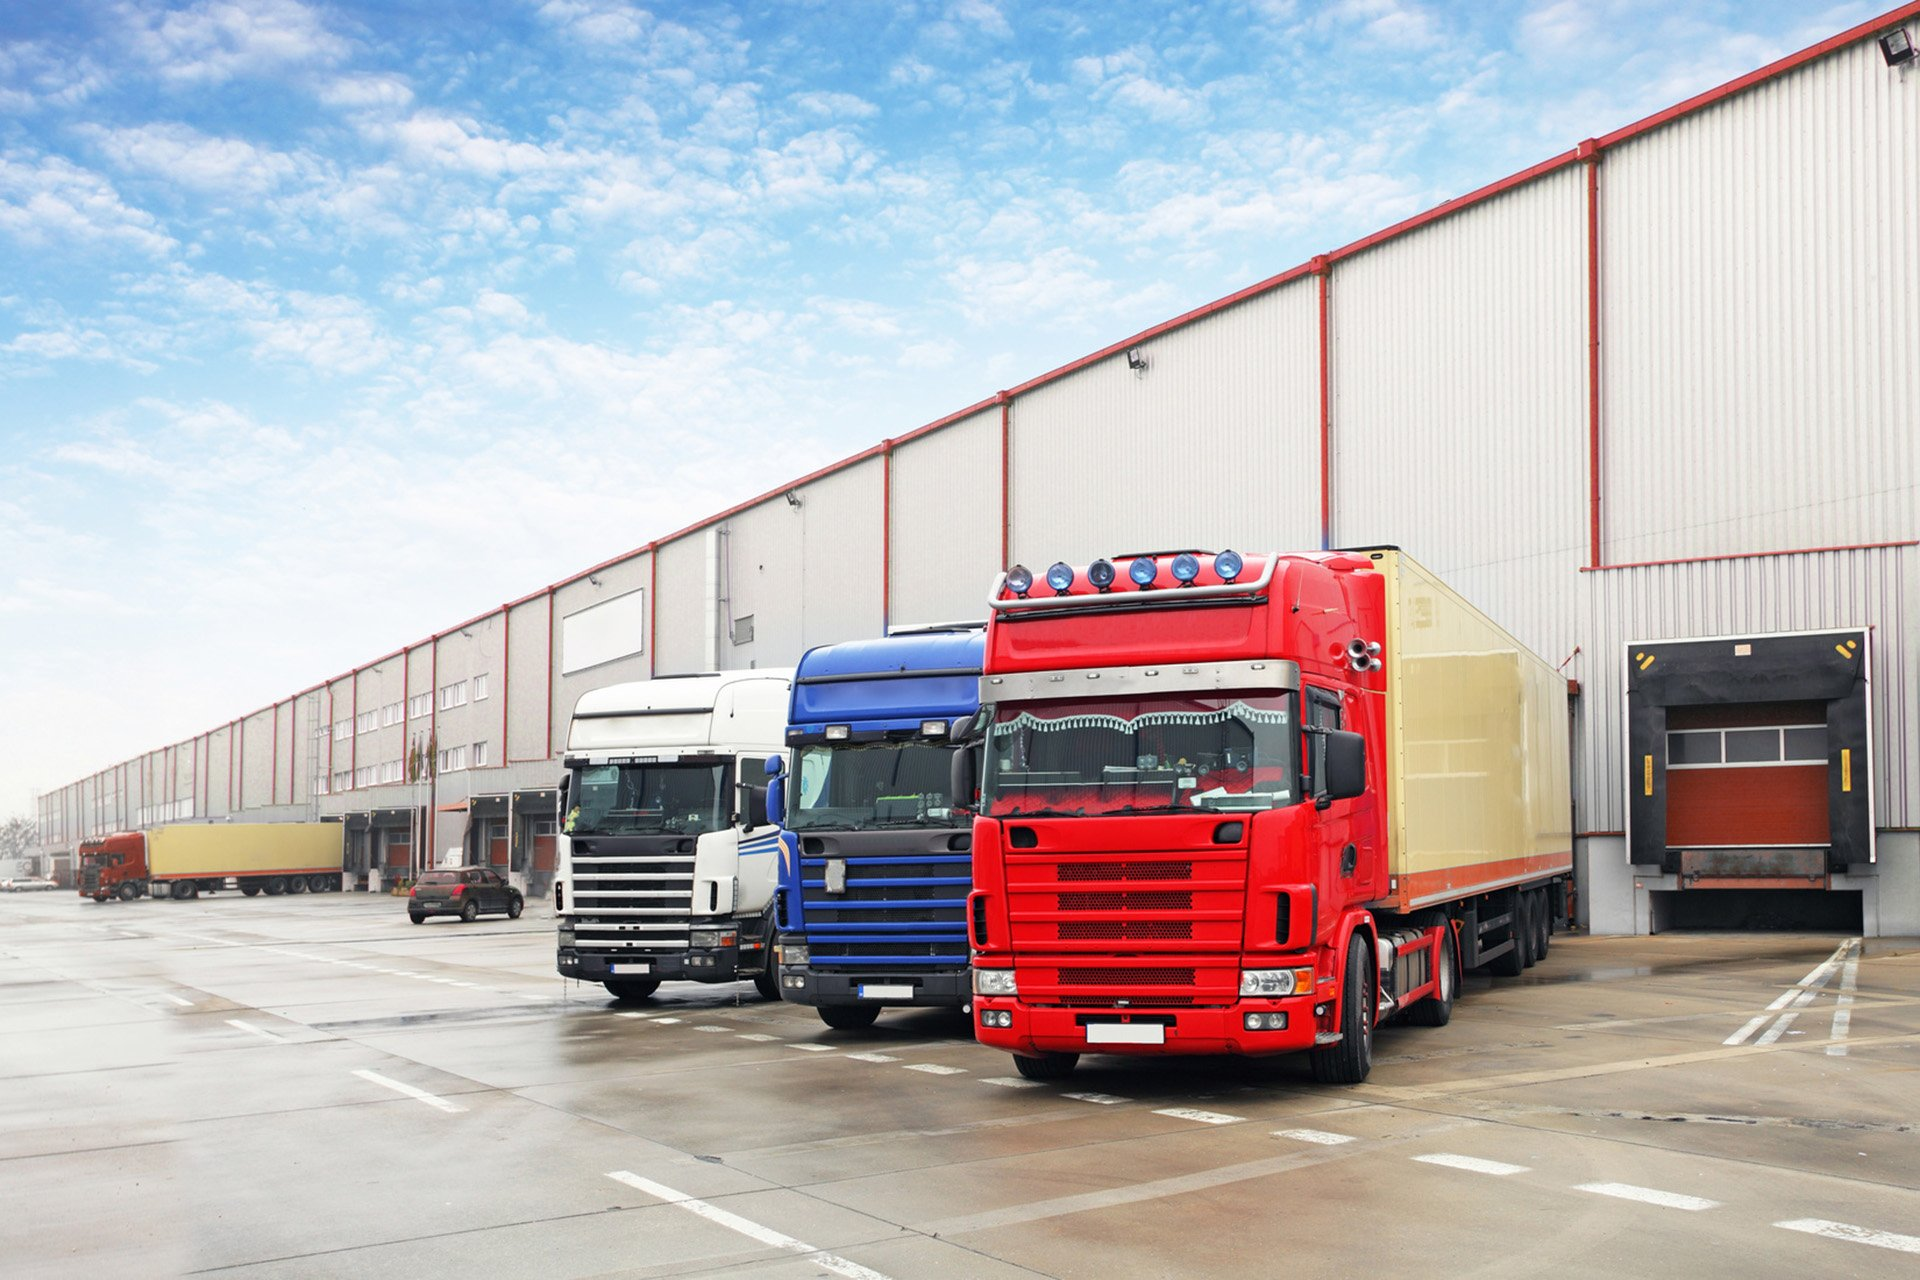 Trucks at an unloading point.